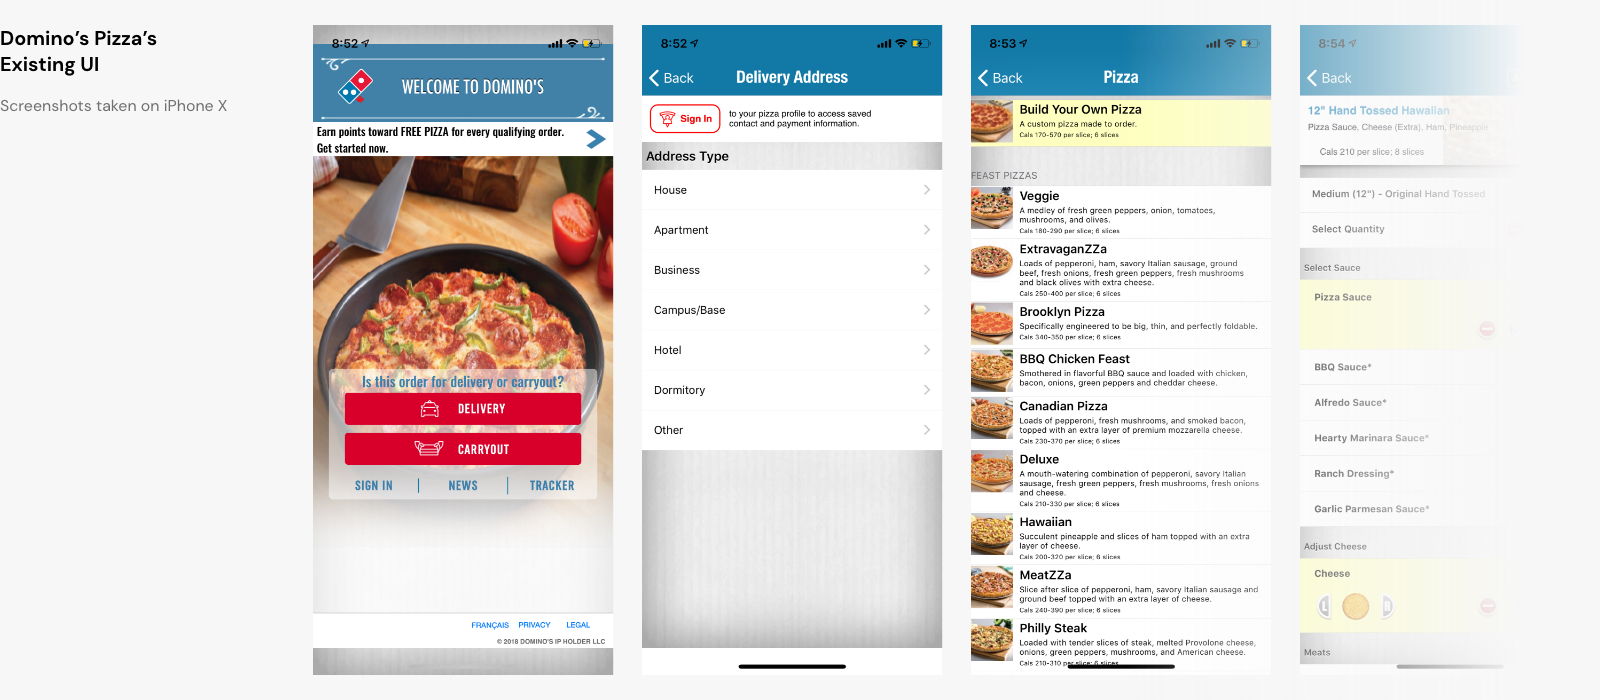 Domino's Pizza Mobile App Design - Simon Shen Design